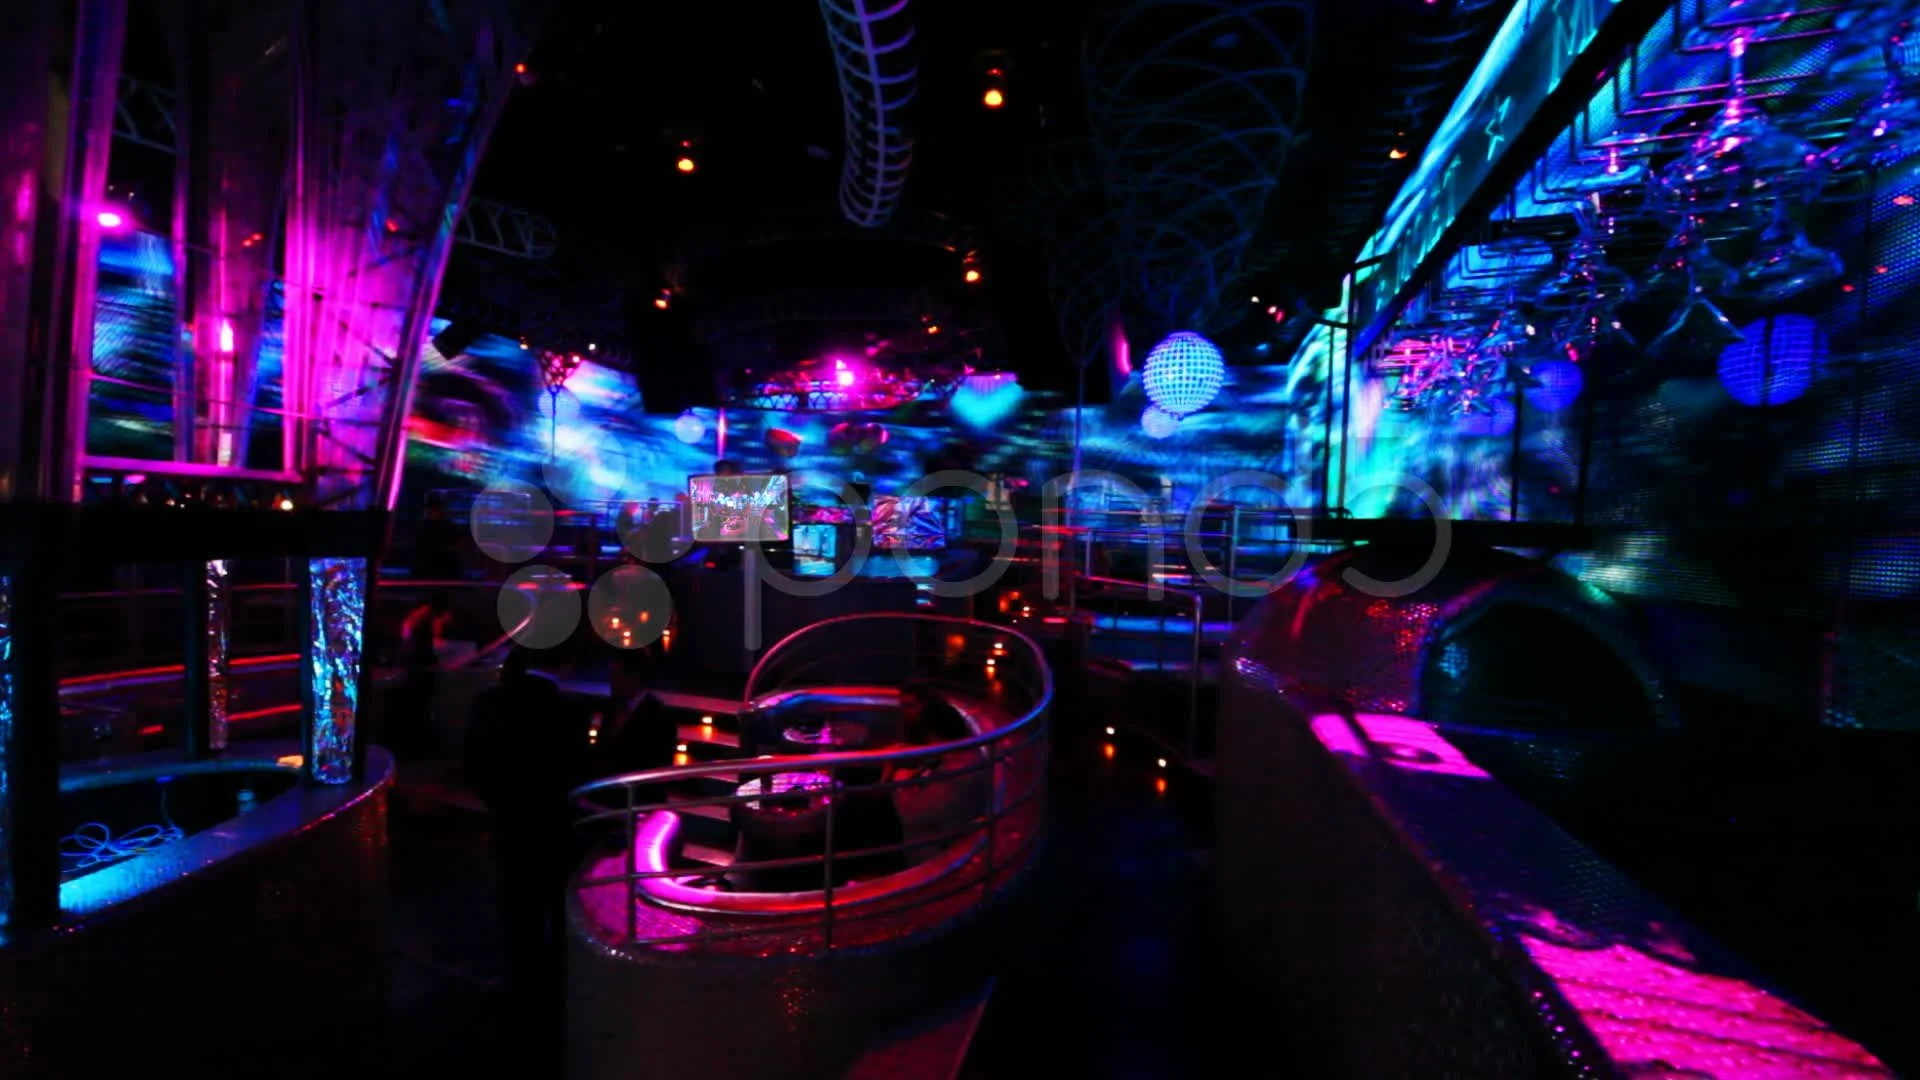 Gta Car Themed Wallpaper People In Nightclub With Bright Led Illumination On Walls